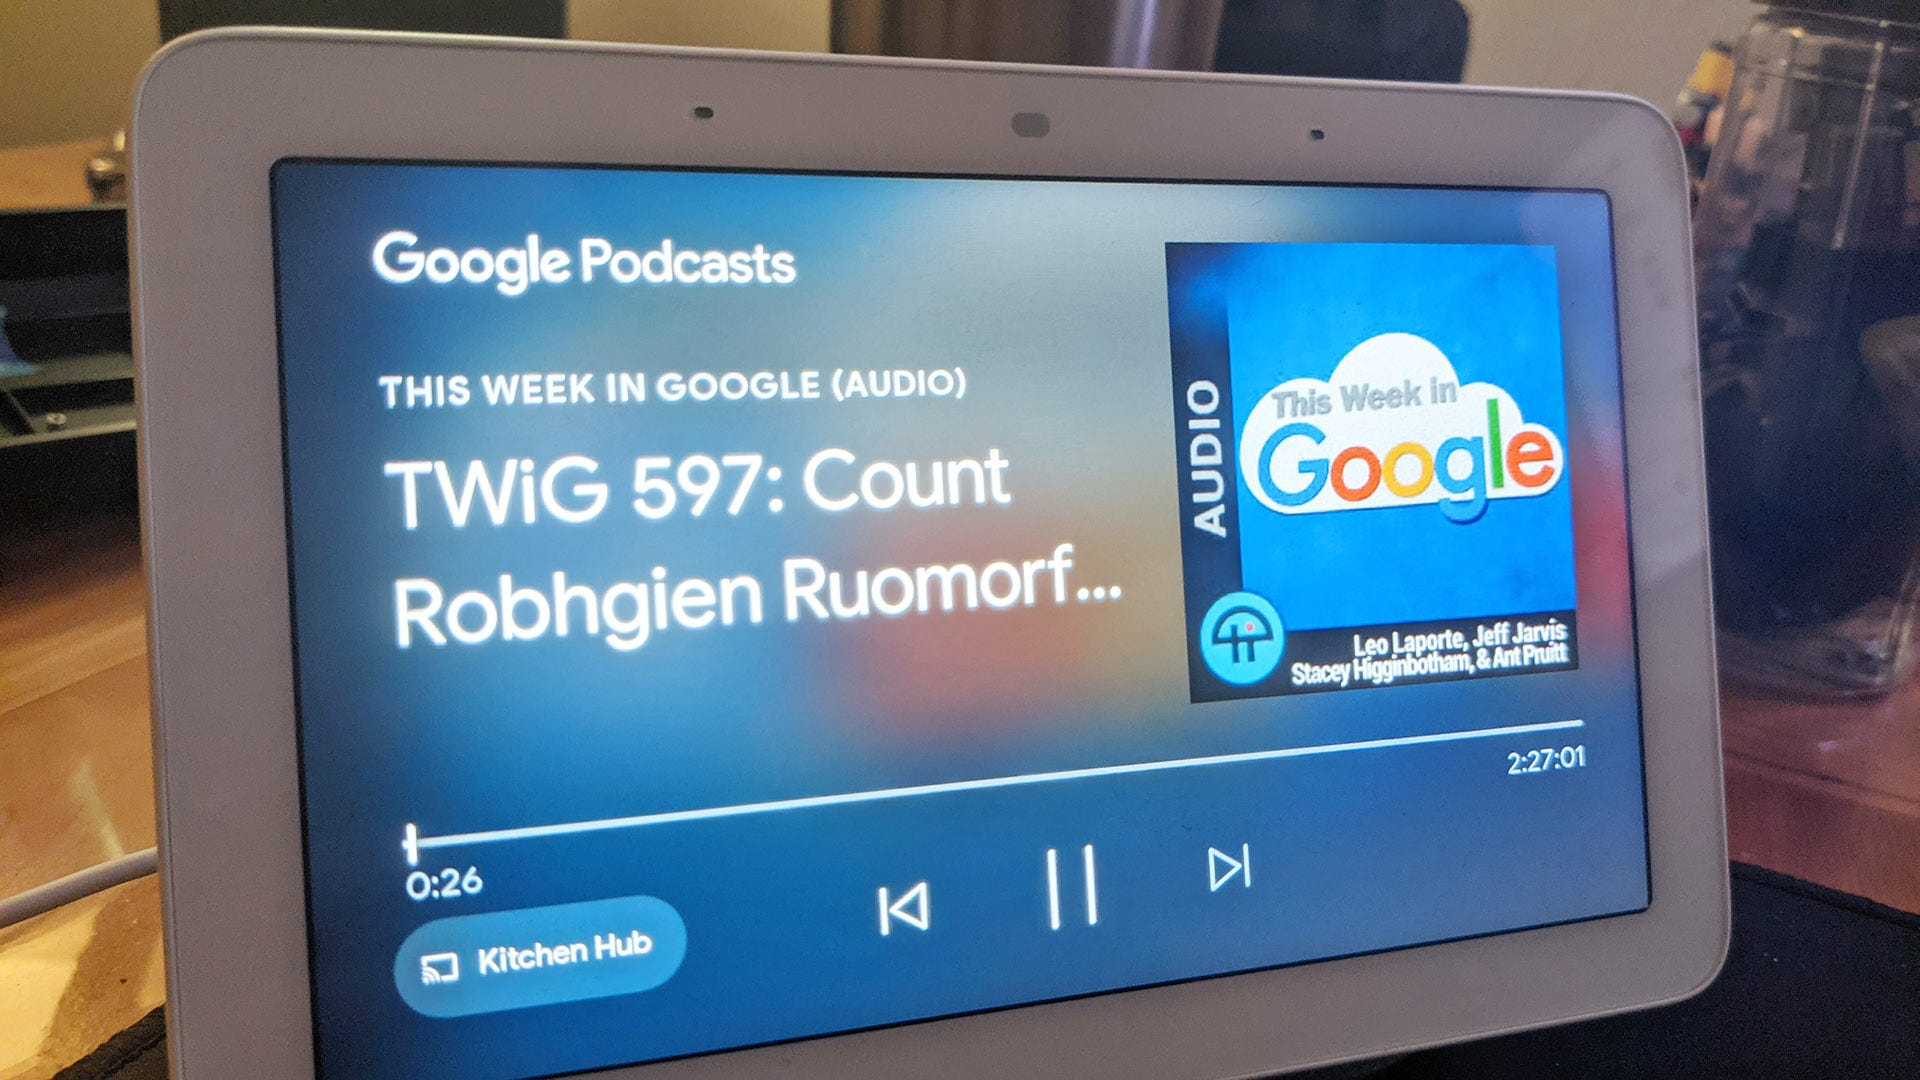 Google Podcasts on the Google Home screen